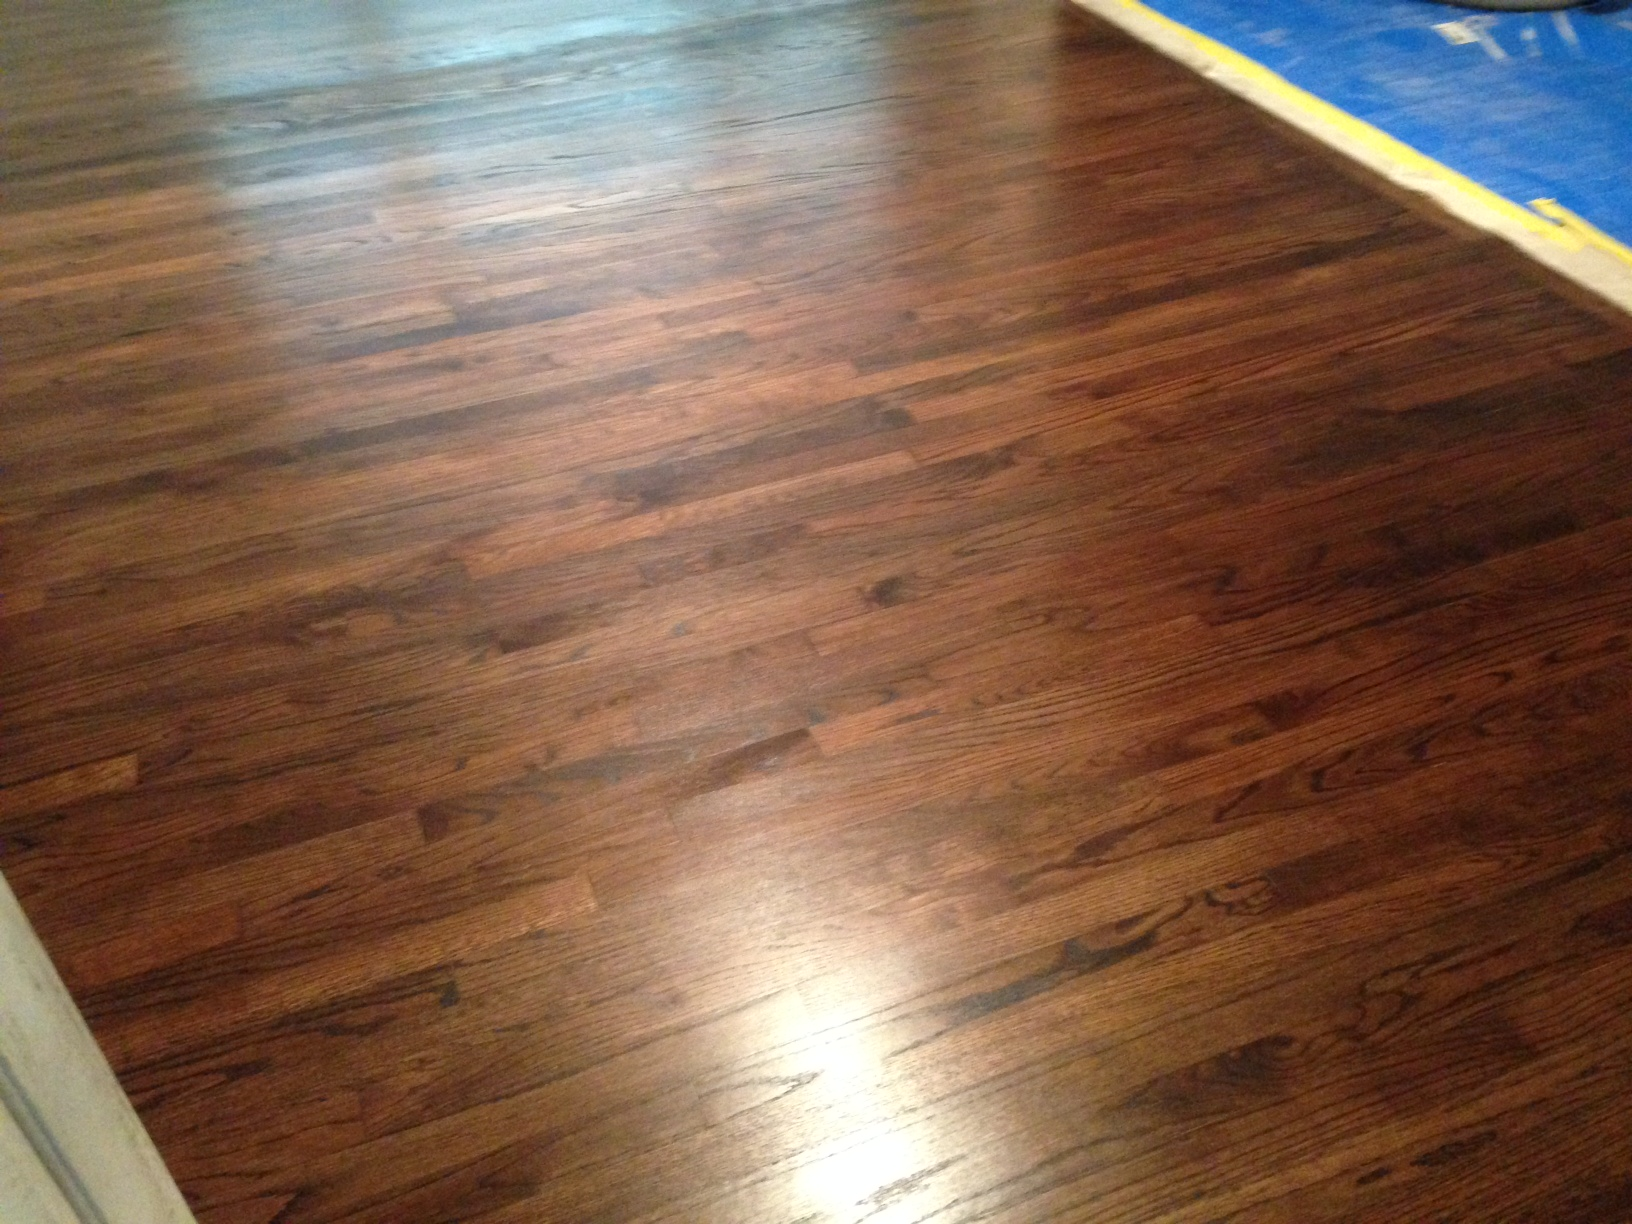 Red oak wood flooring refinishing in englewood for Red oak hardwood flooring